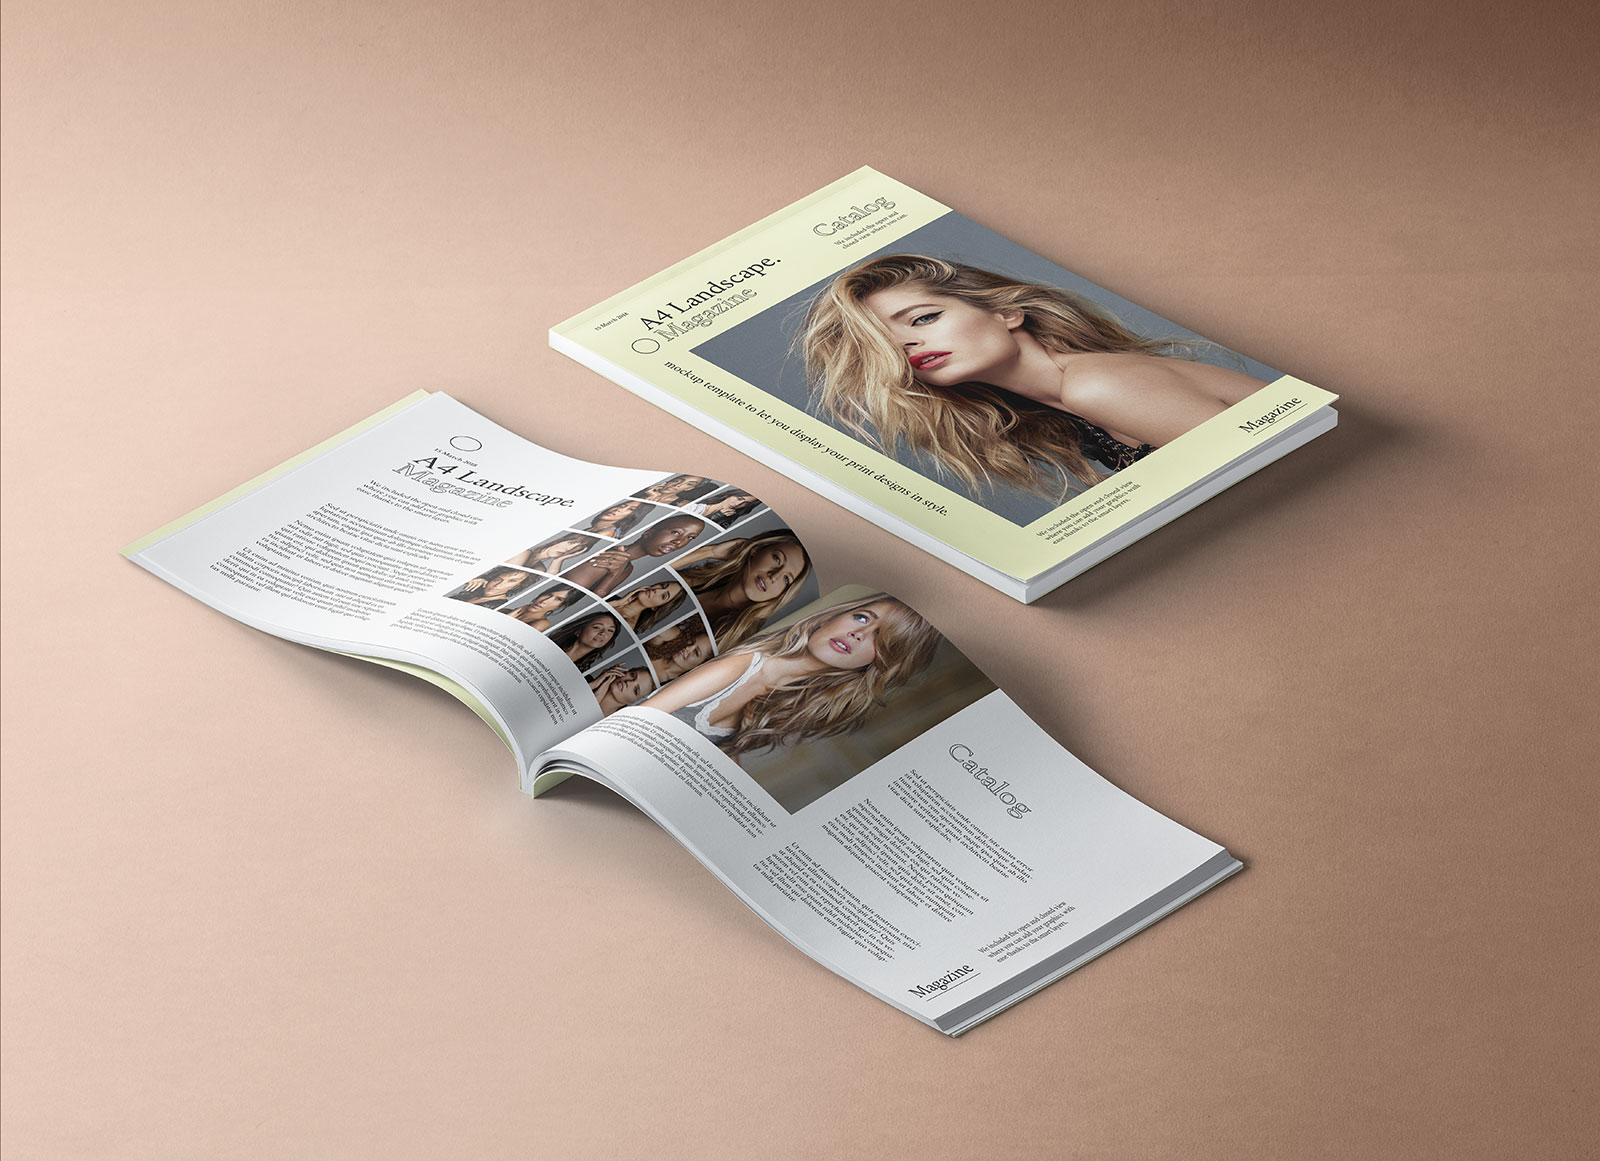 Free-A4-Landscape-Title-&-Inner-Pages-Magazine-Mockup-PSD